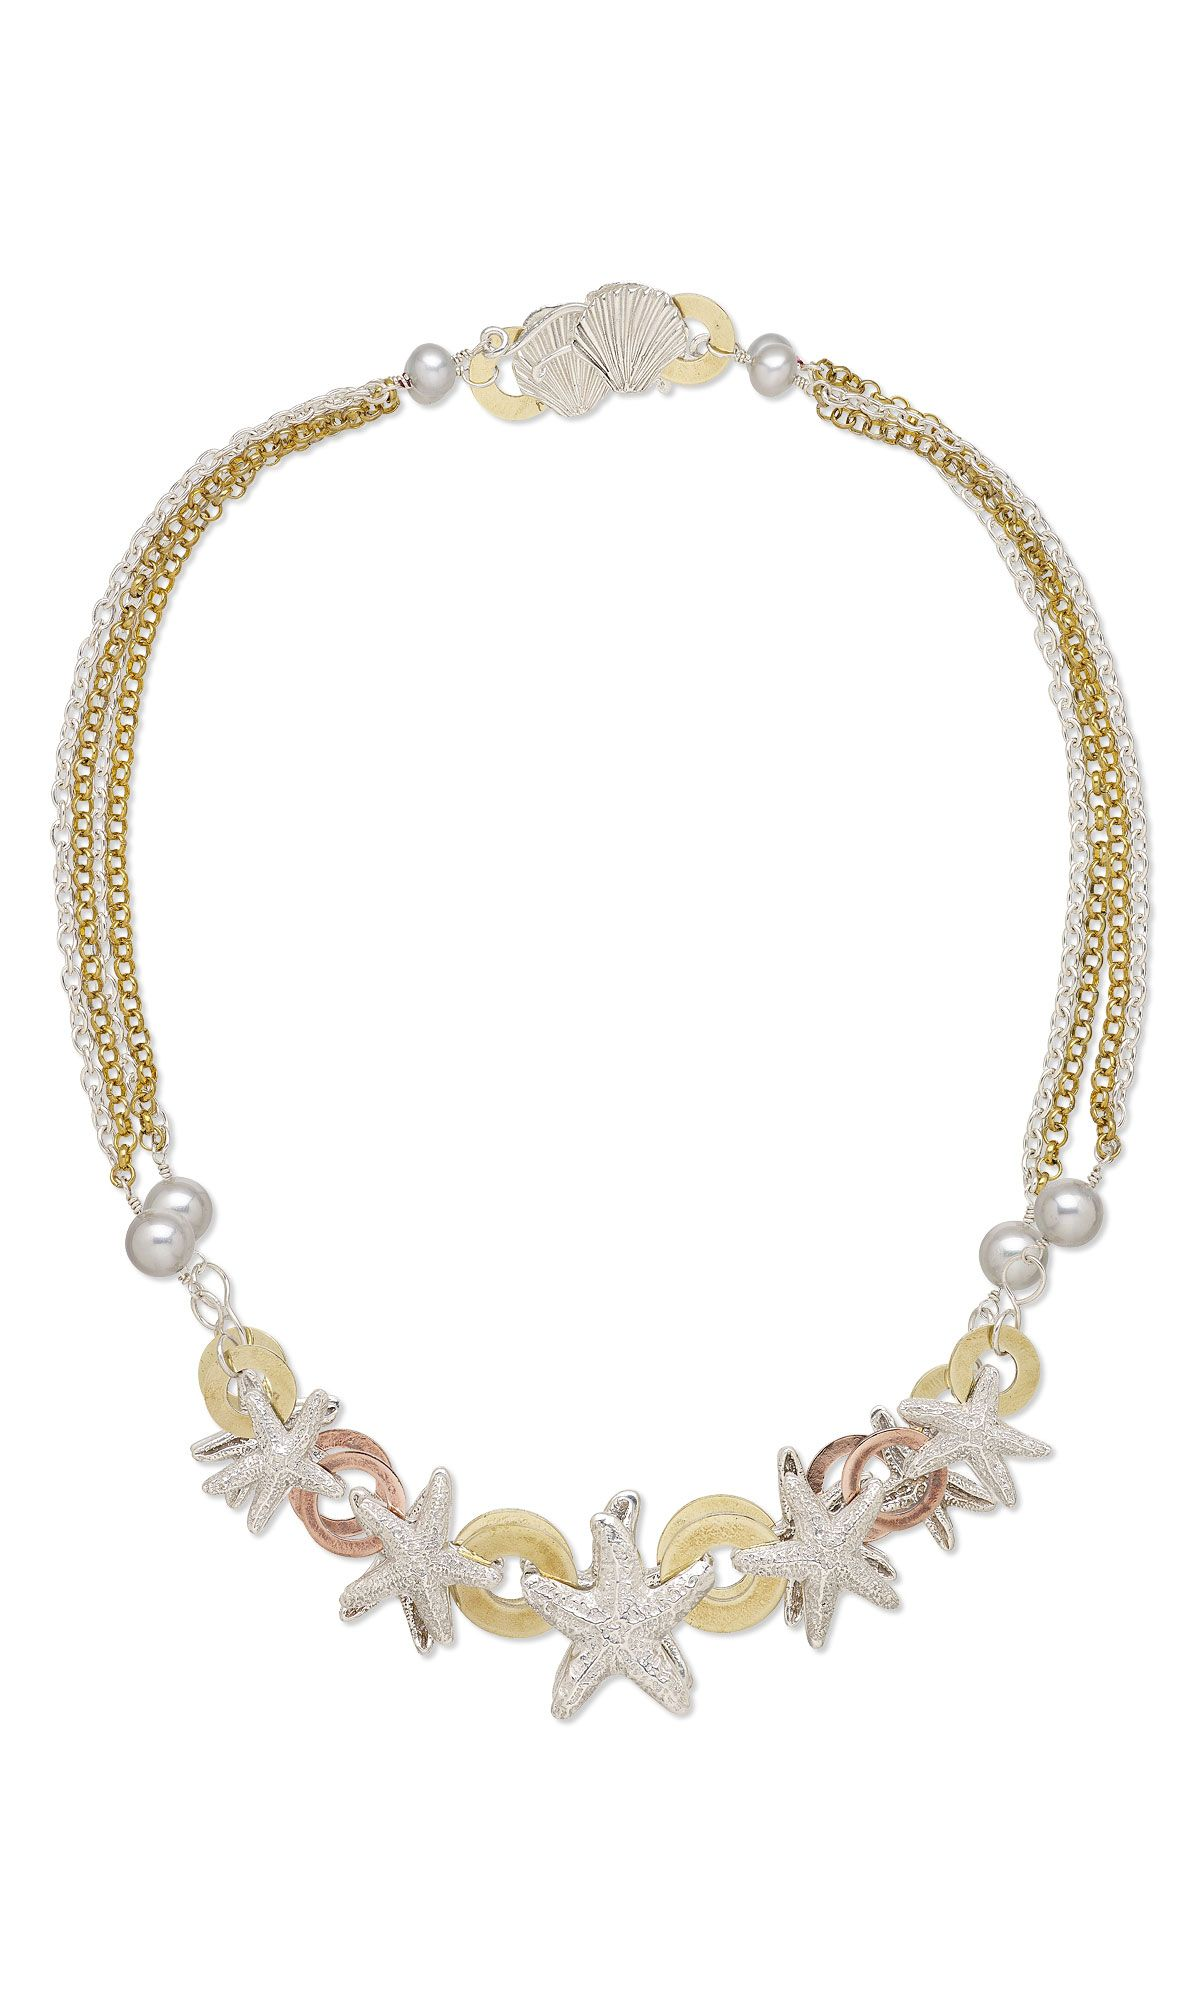 Jewelry Design - Multi-Strand Necklace with PMC3™ (Precious Metal Clay) and Pearls - Fire Mountain Gems and Beads